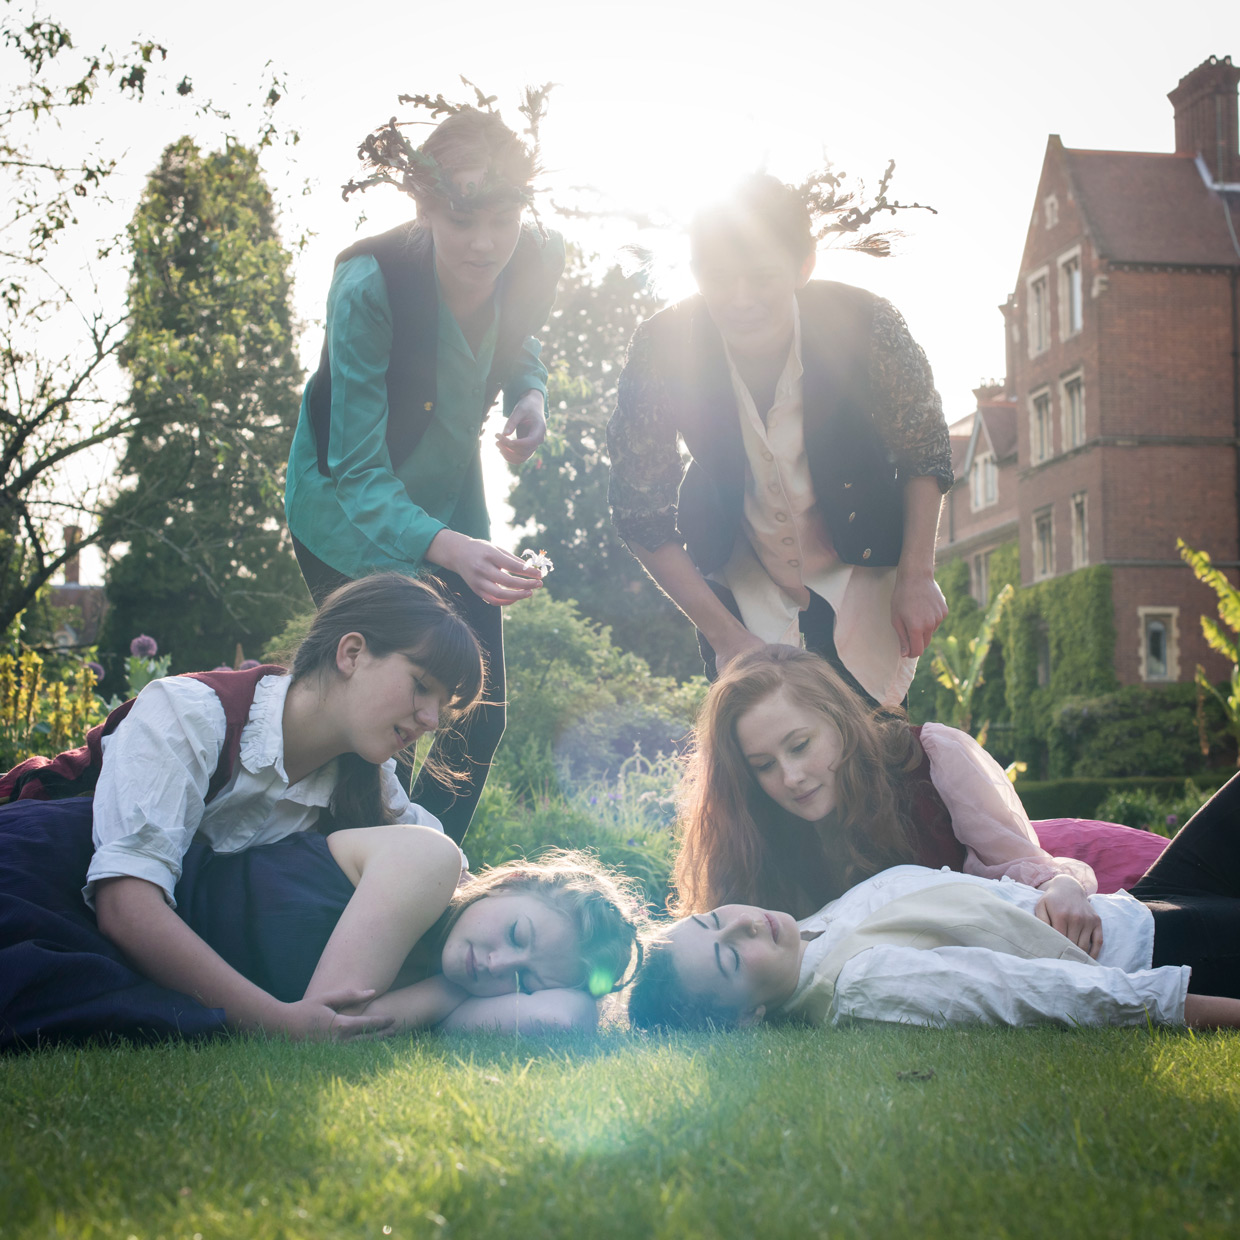 hjorthmedh-a-midsummer-nights-dream-photoshoot-selwyn-college-8